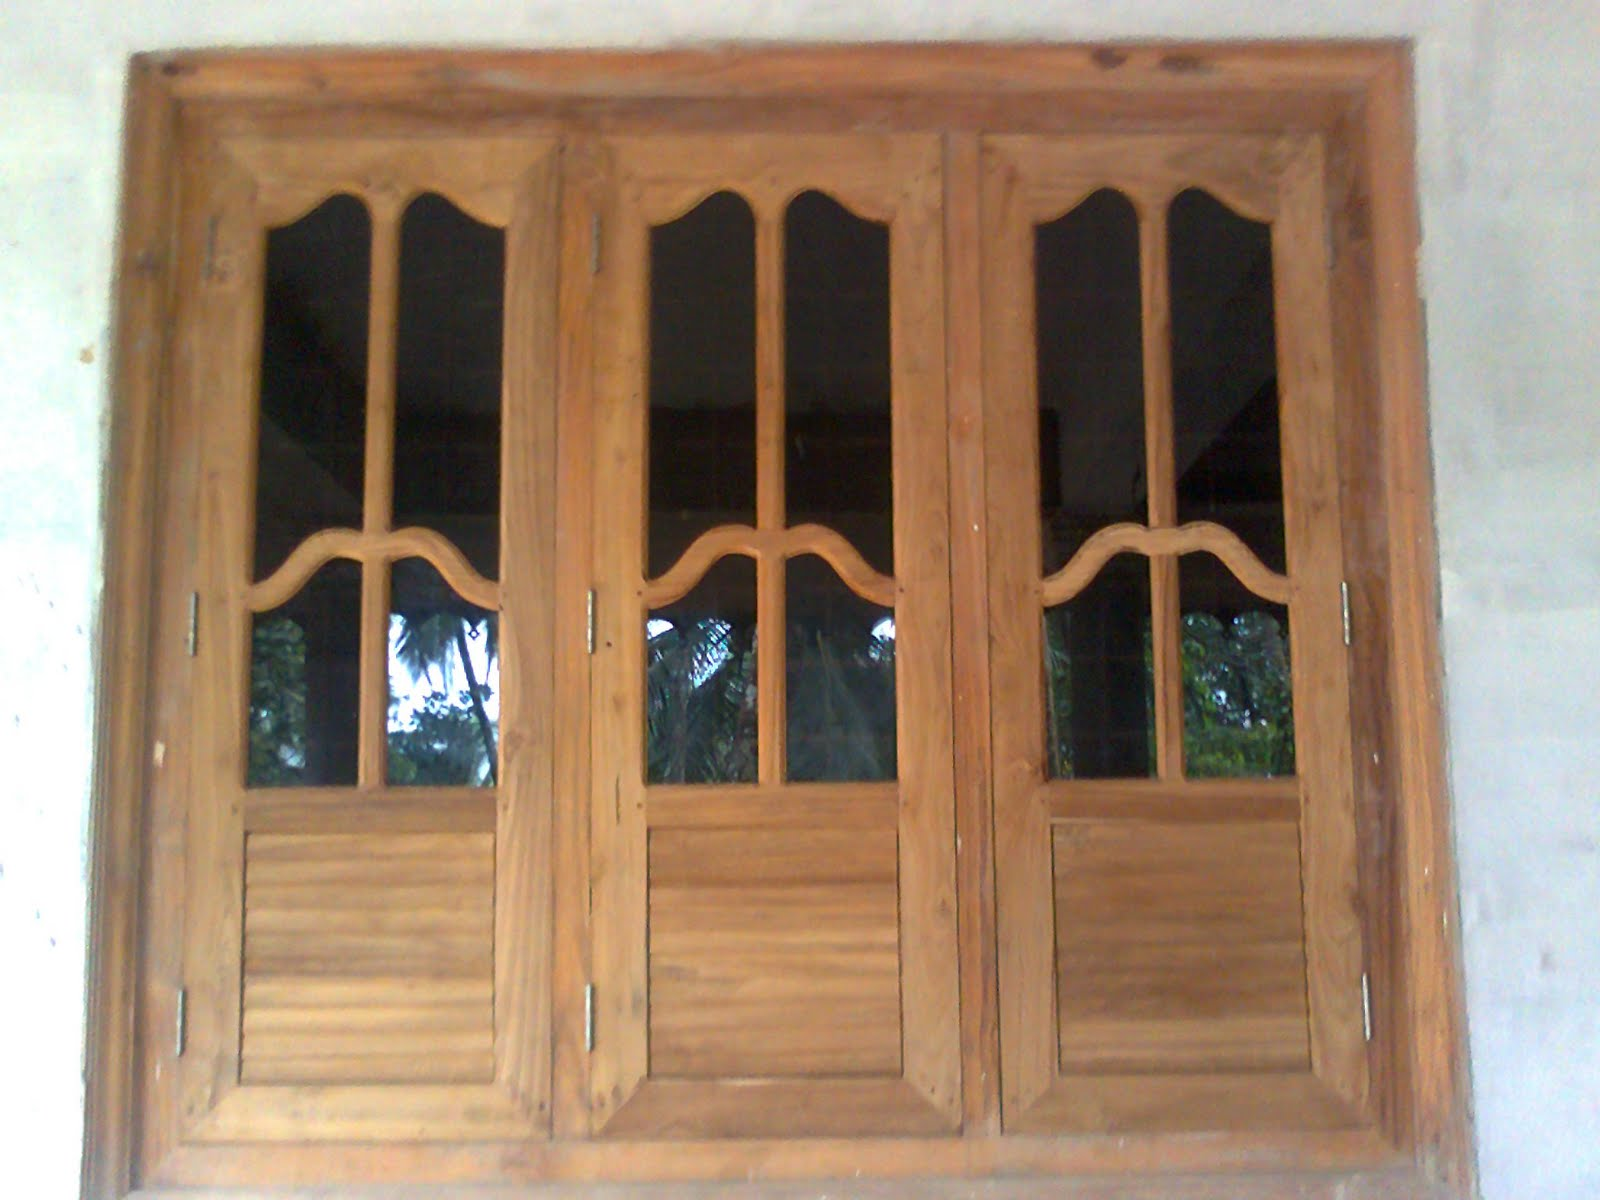 Wooden Doors and Windows Designs